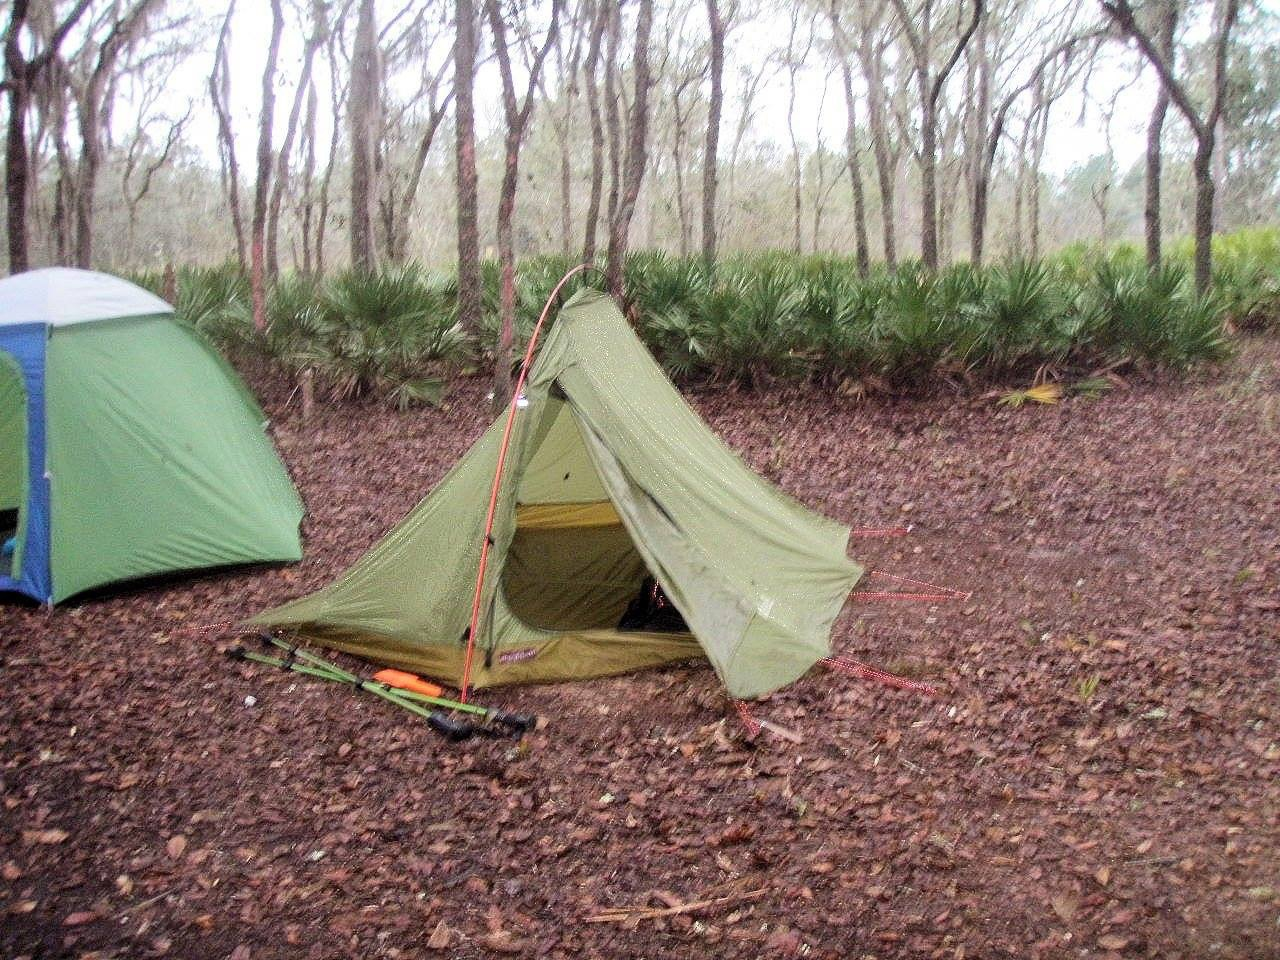 florida, backpacking, hiking, camping